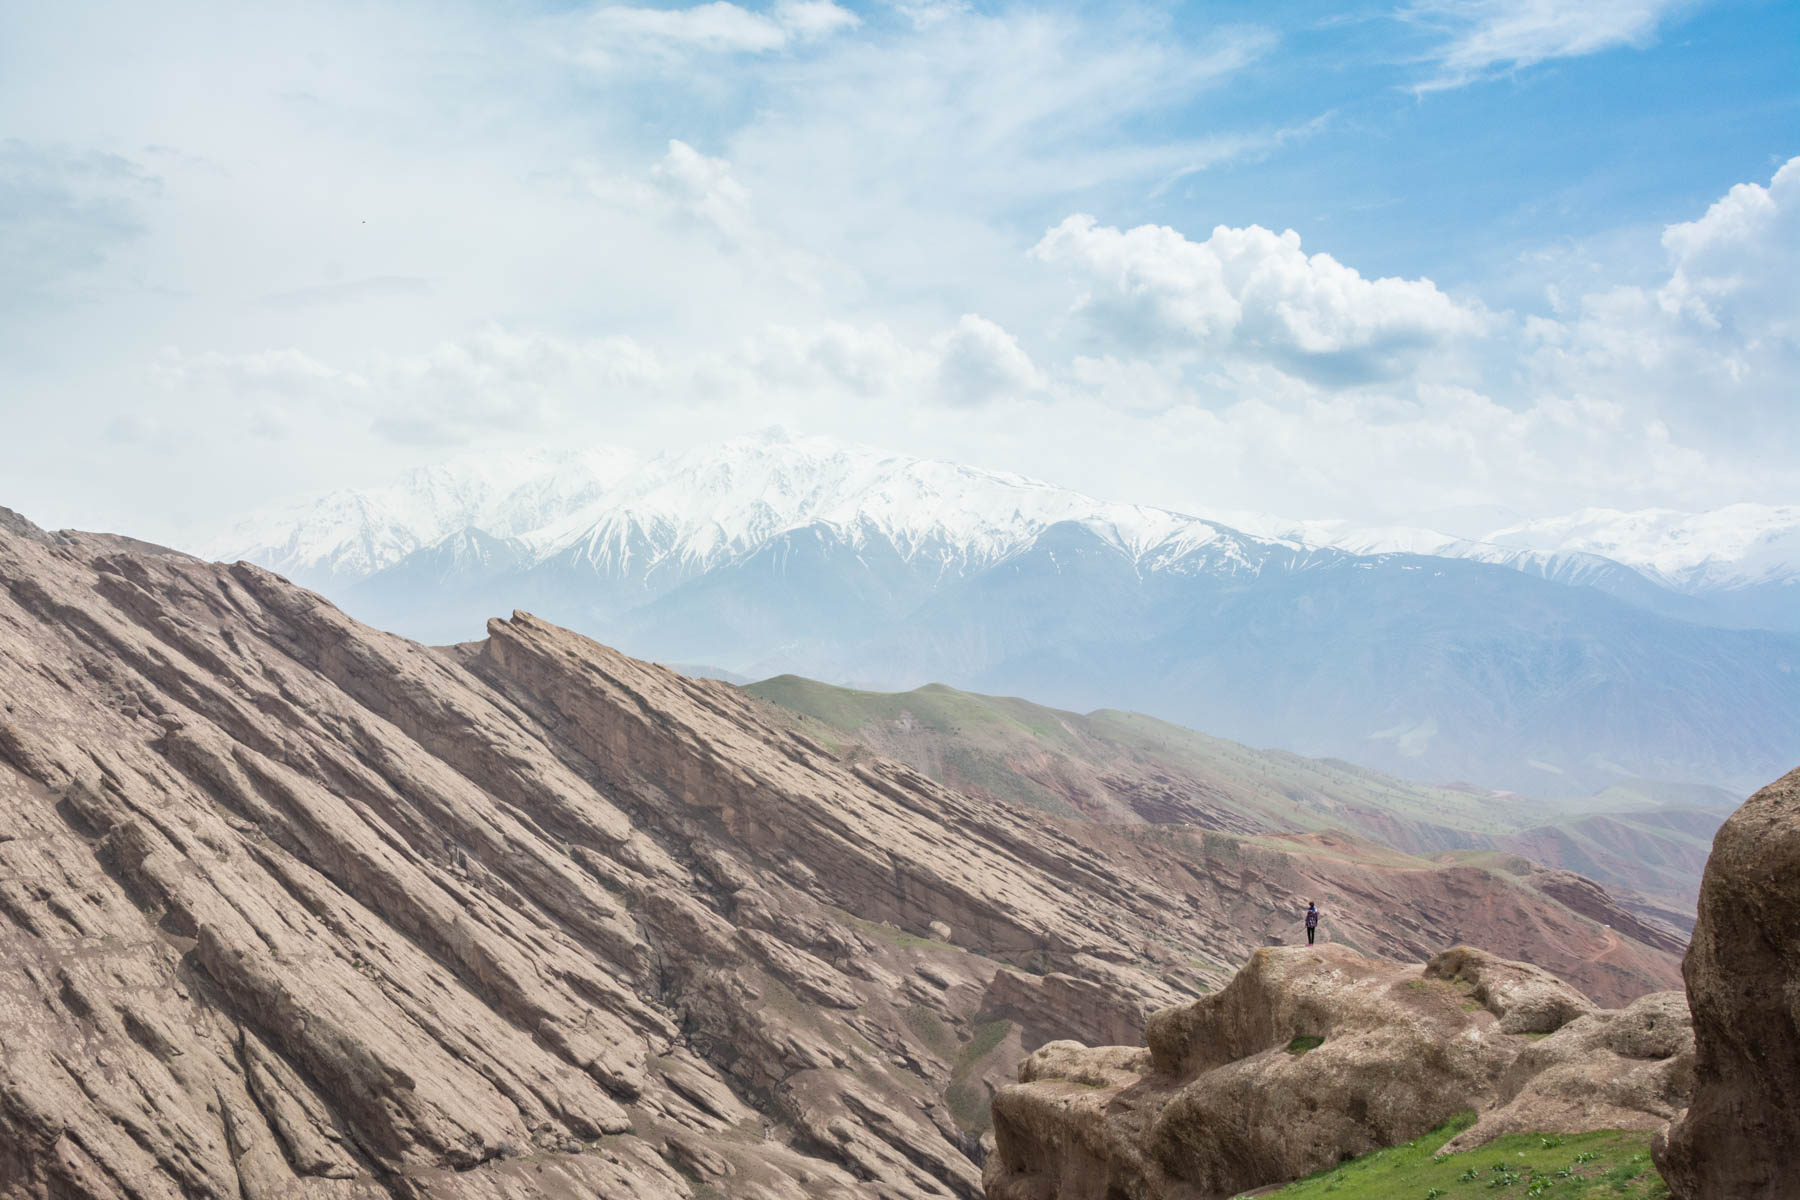 A view slanting of rock formations from the Alamut Castle